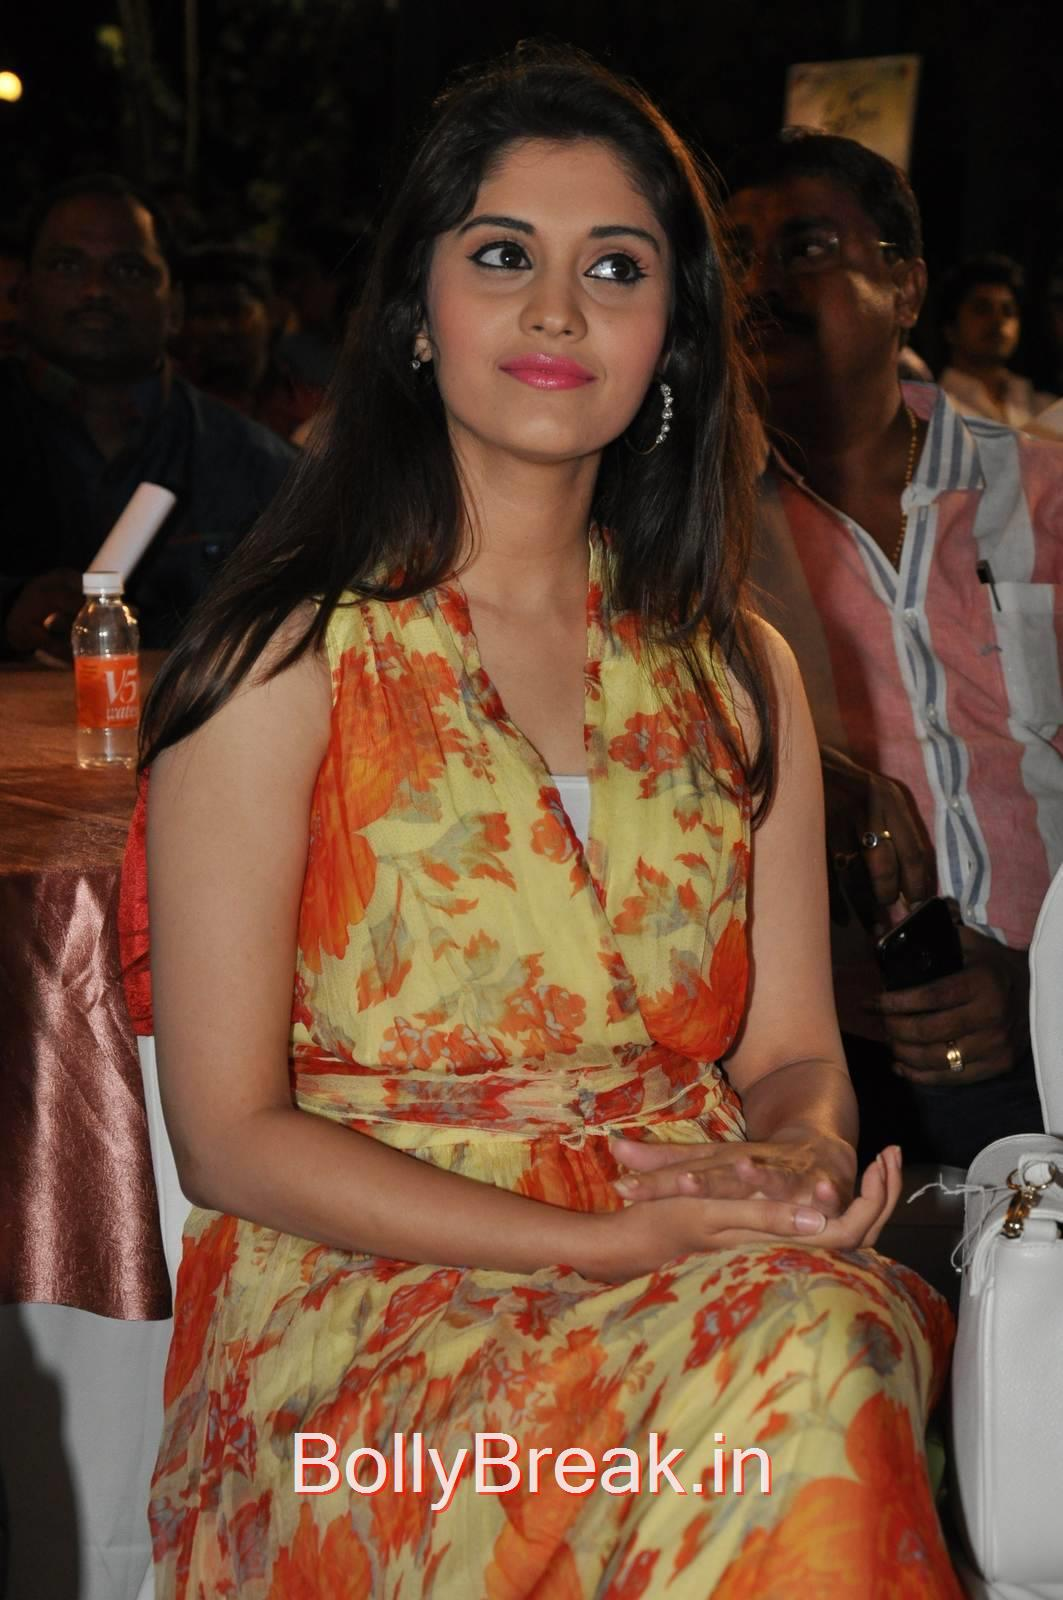 Tollywood Actress Surabhi, Actress Surabhi Hot Photo gallery from an event